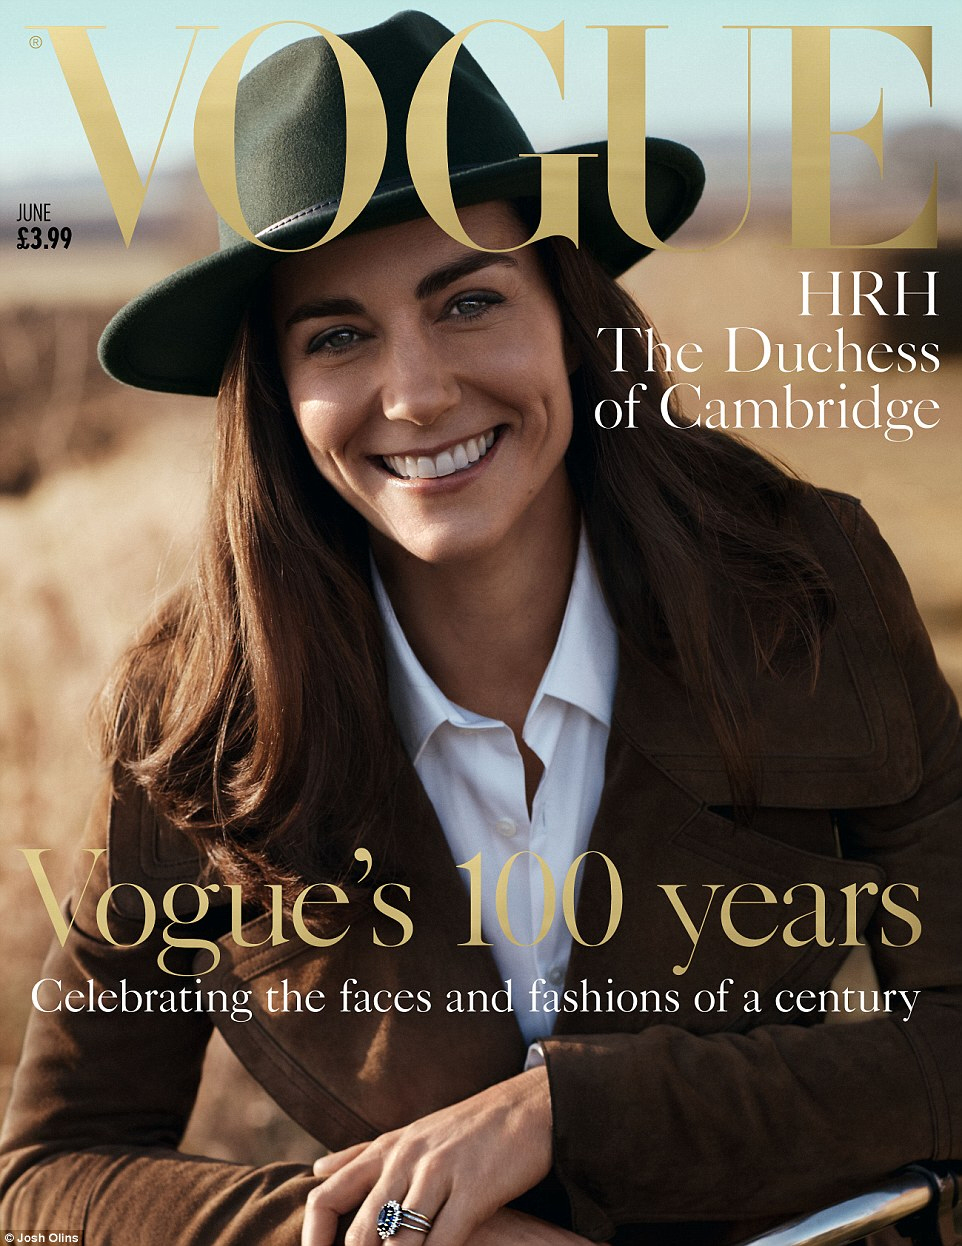 kate vogue cover